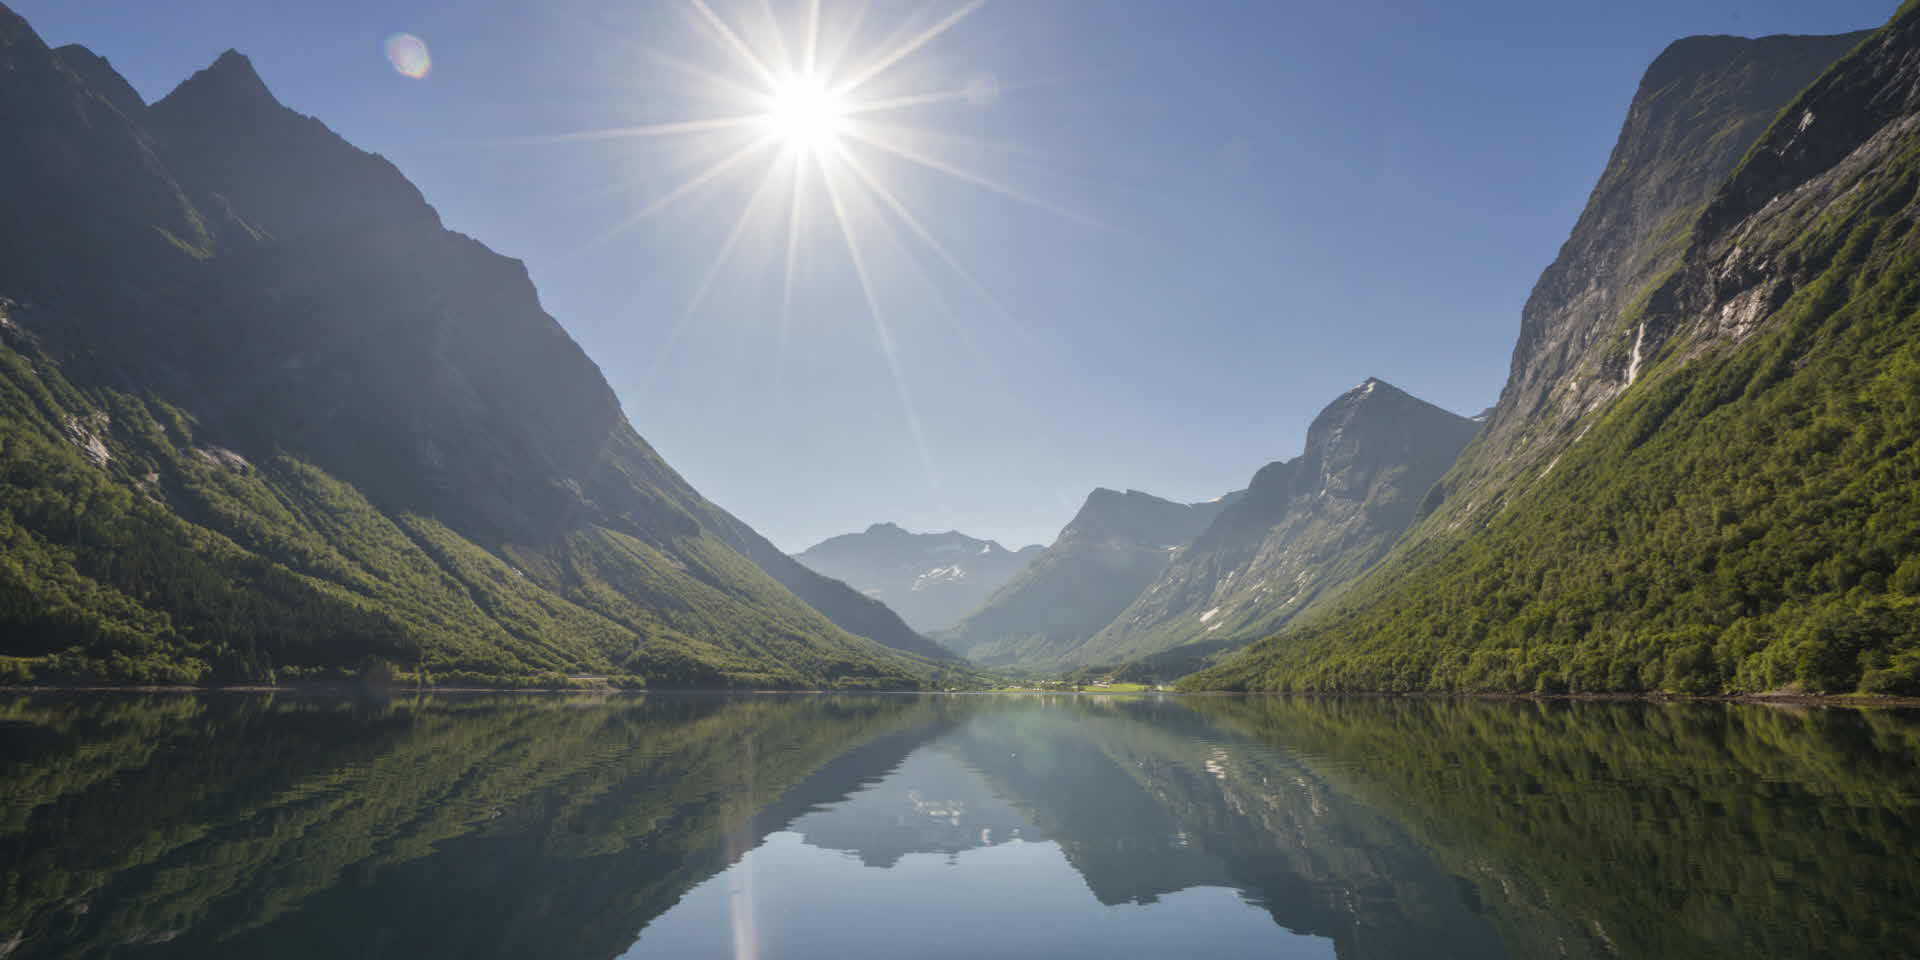 Breathtaking tranqulity as sailing through smooth Hjorndfjord on a bright summer day